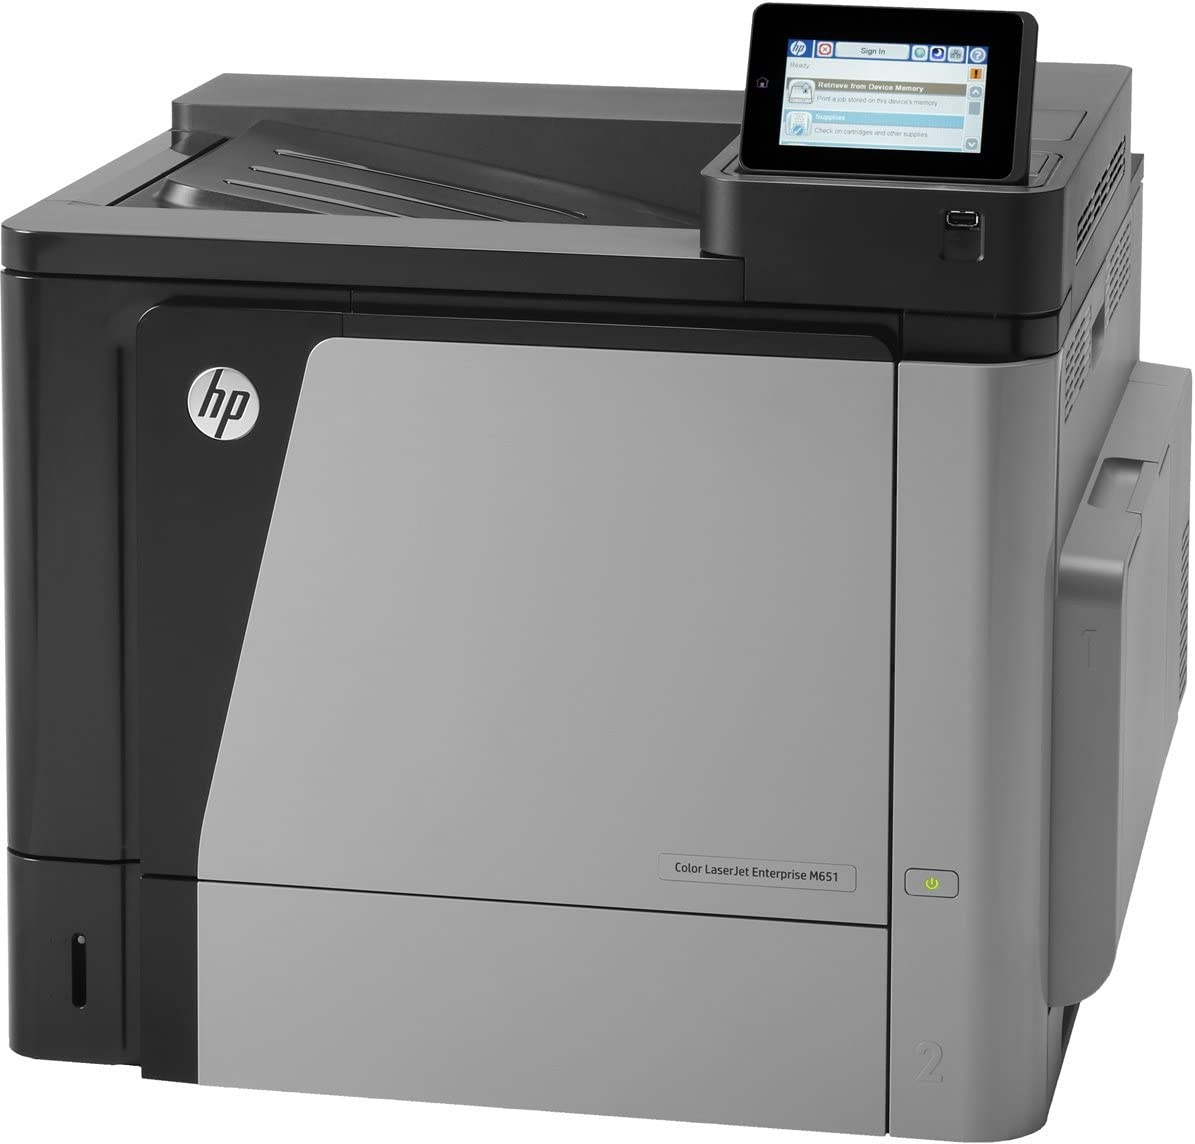 HP Laserjet Enterprise M 651 DN - Impresora Láser Color: Amazon.es ...